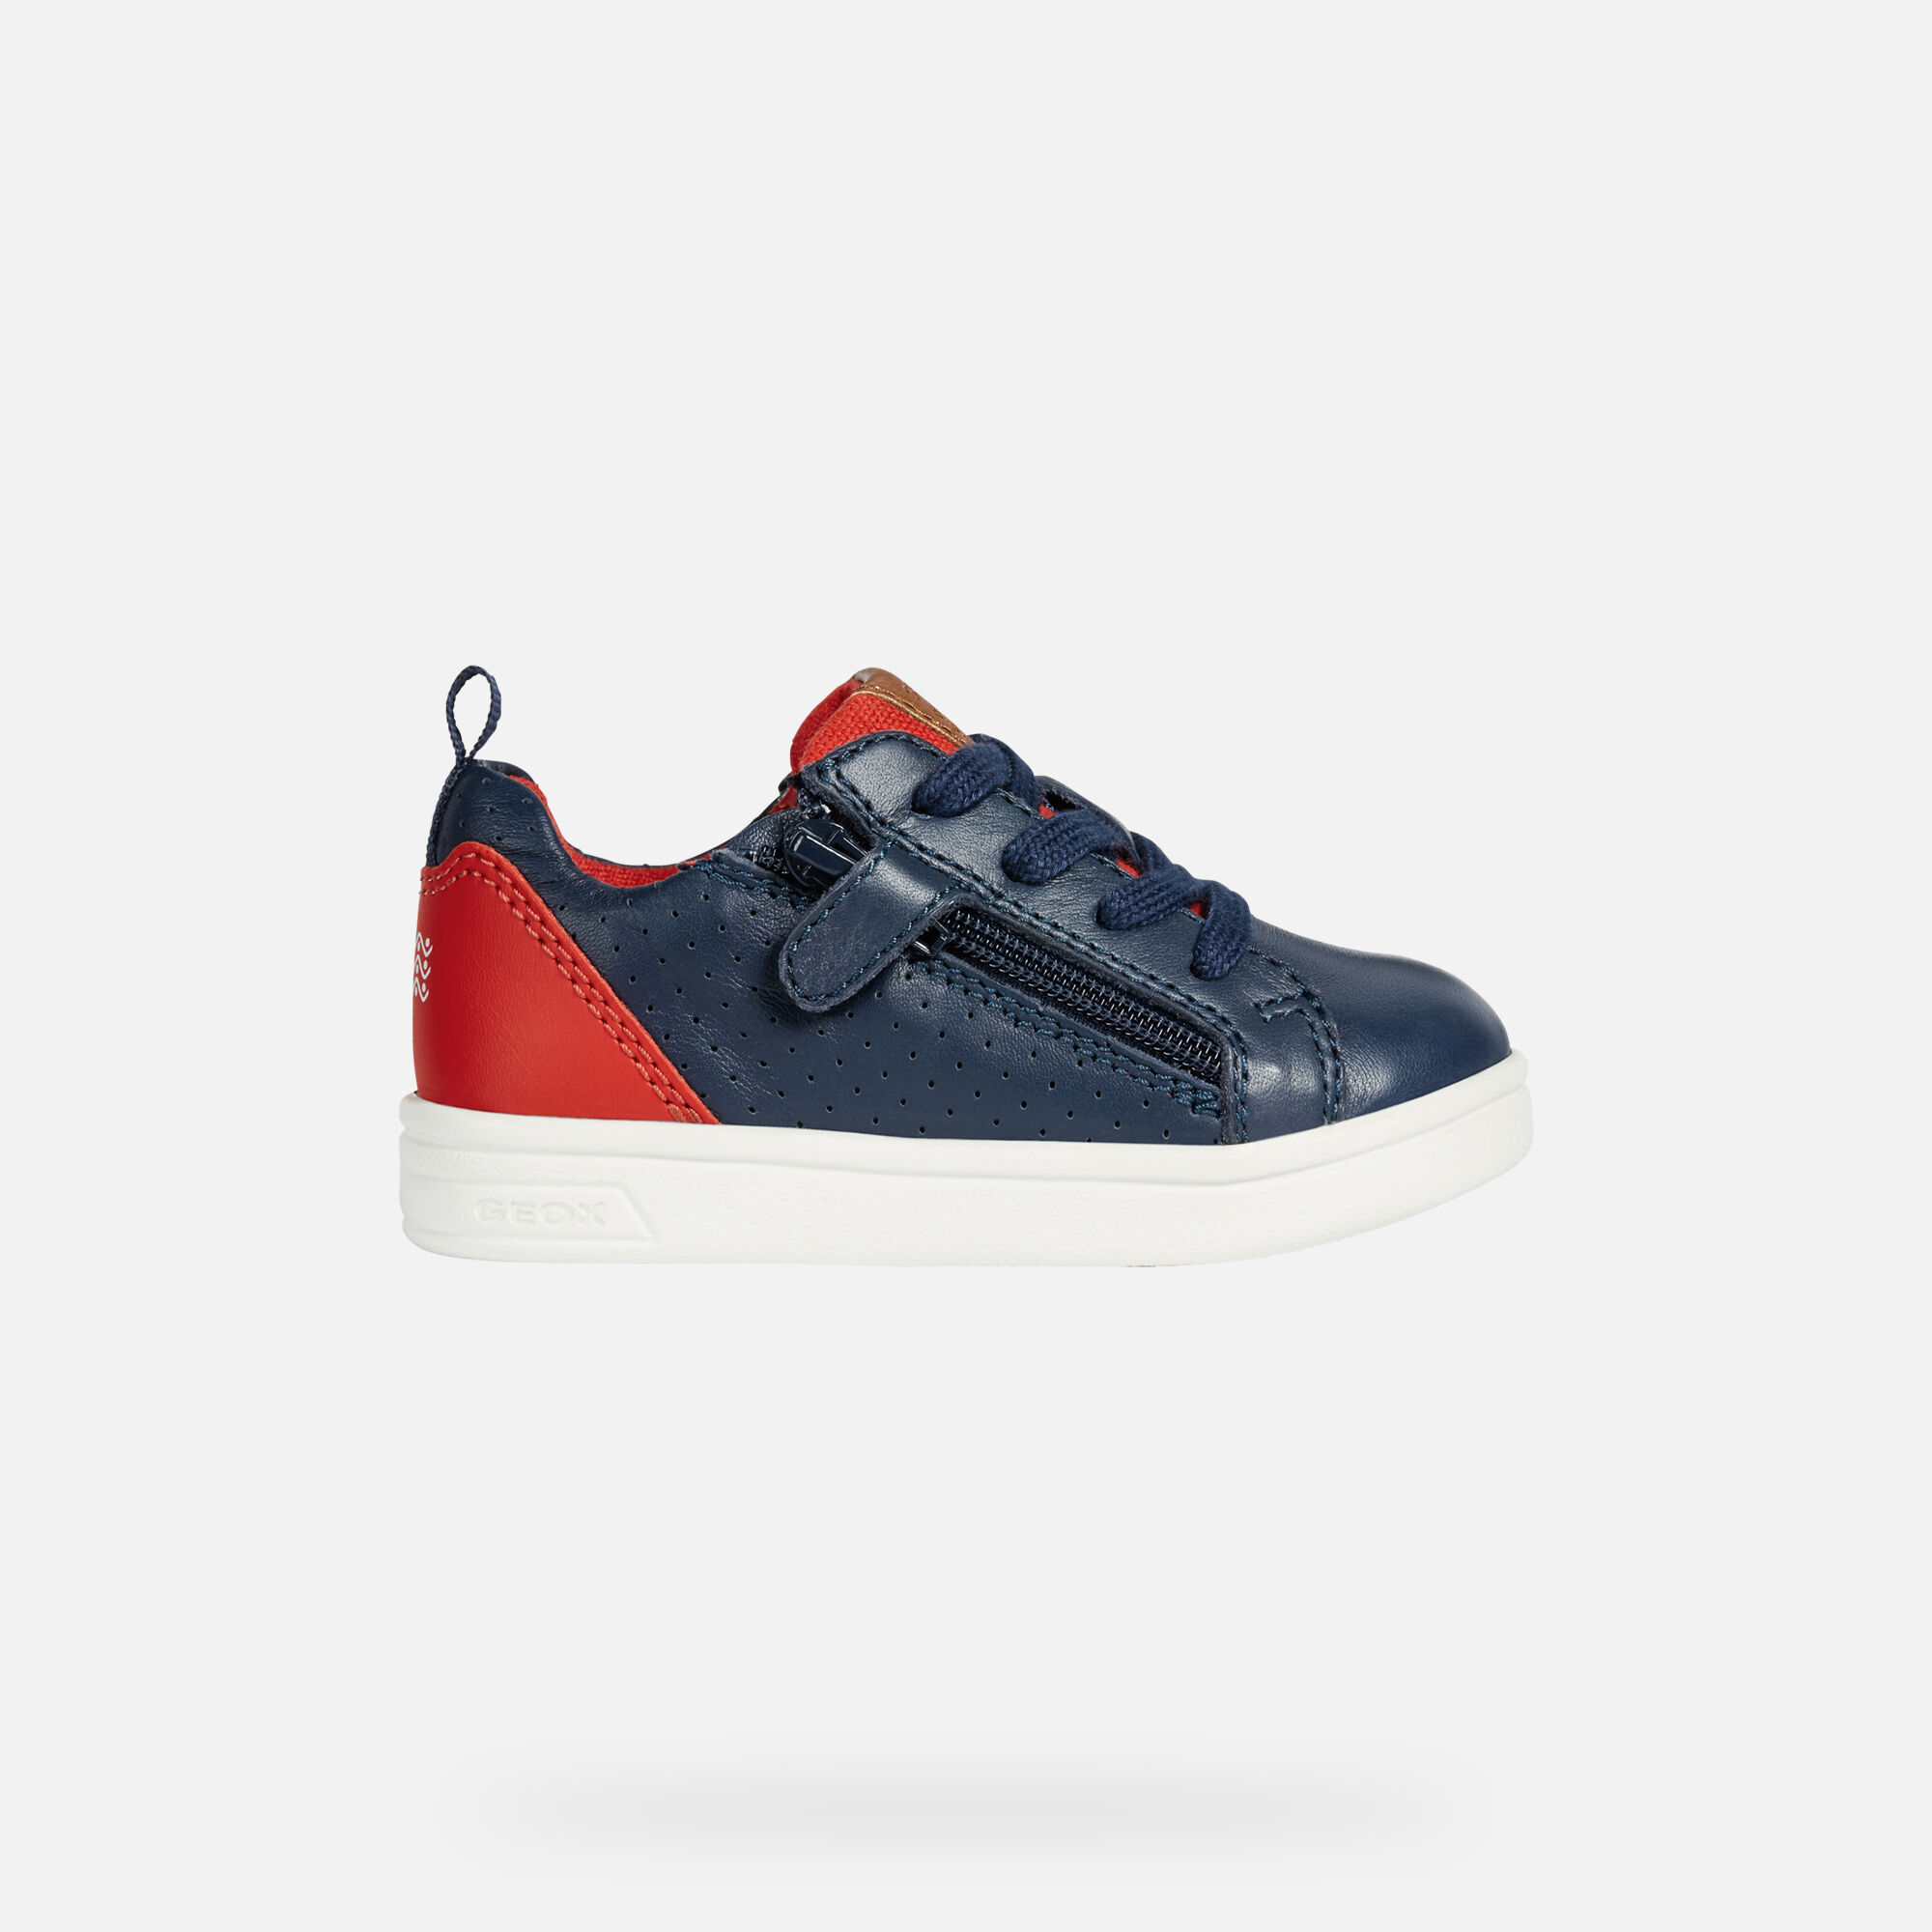 Geox B DJROCK BOY: Blue Navy and Red Baby Sneakers | Geox SS19